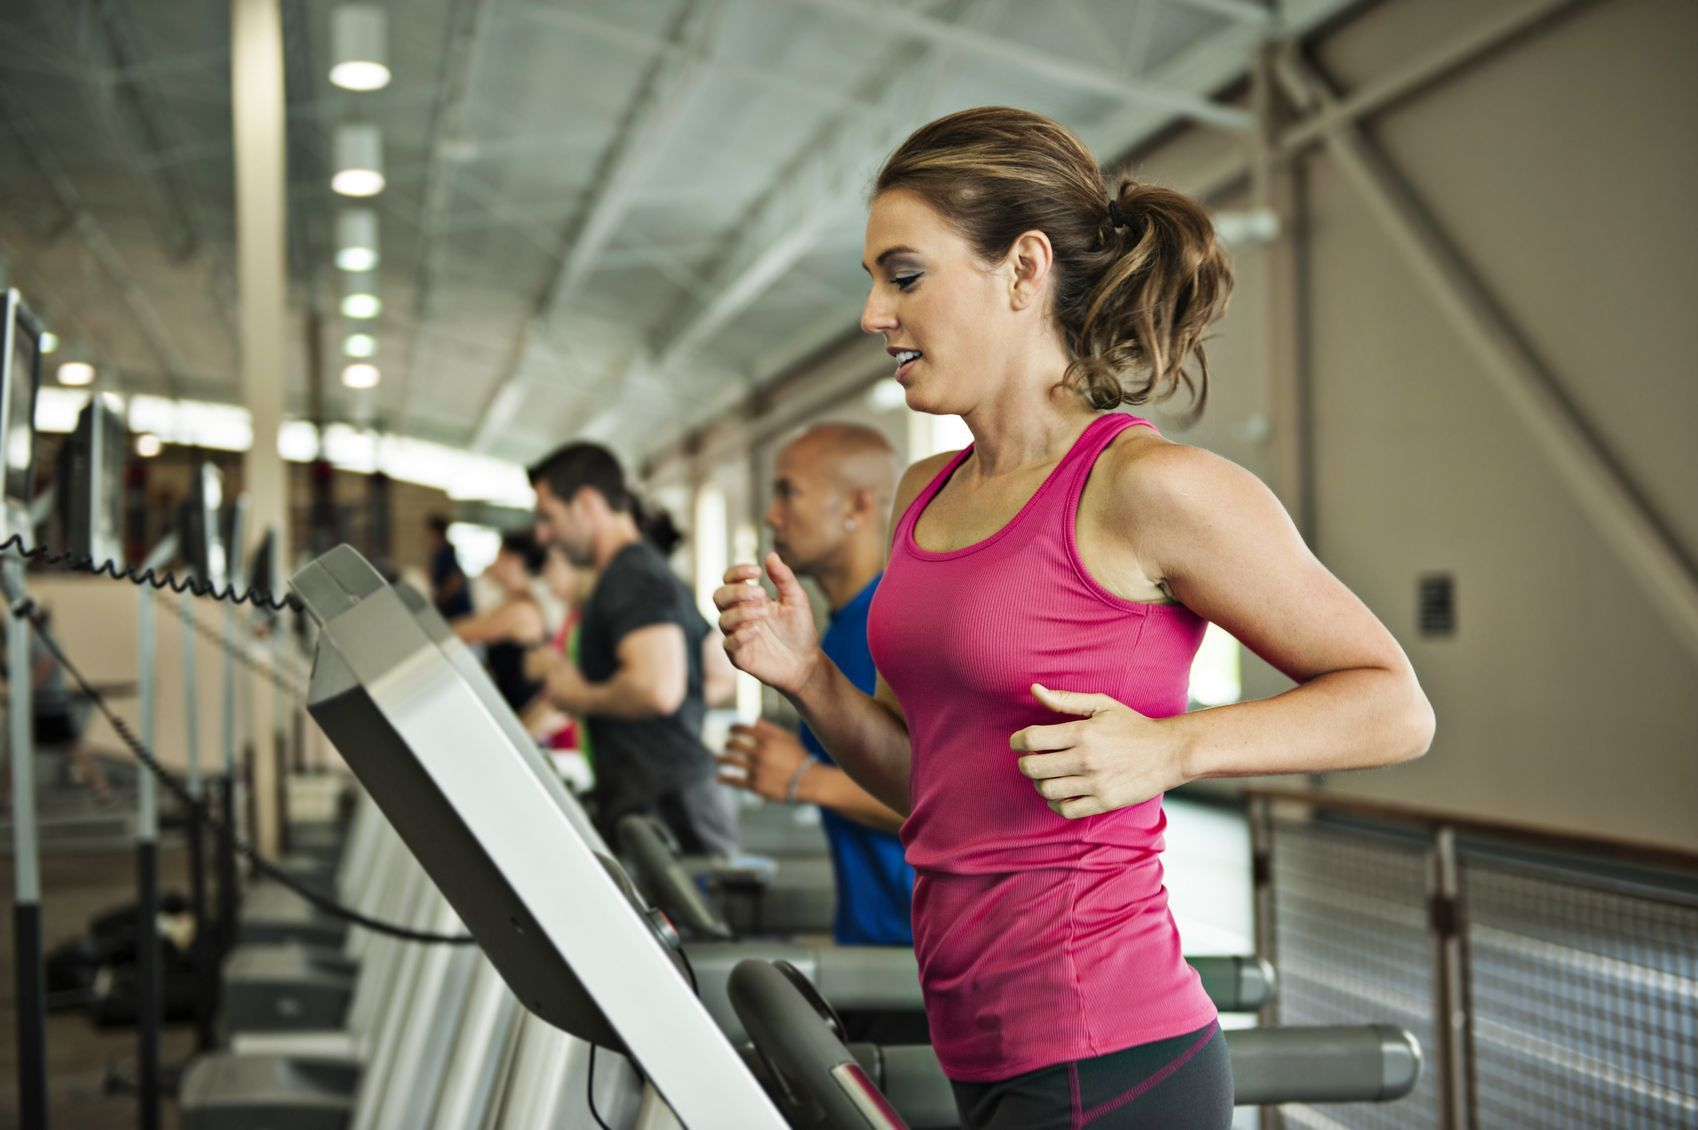 4 Cardio Workouts That Maximize Your Afterburn Hiit Workouts Treadmill Cardio Workout Treadmill Workouts